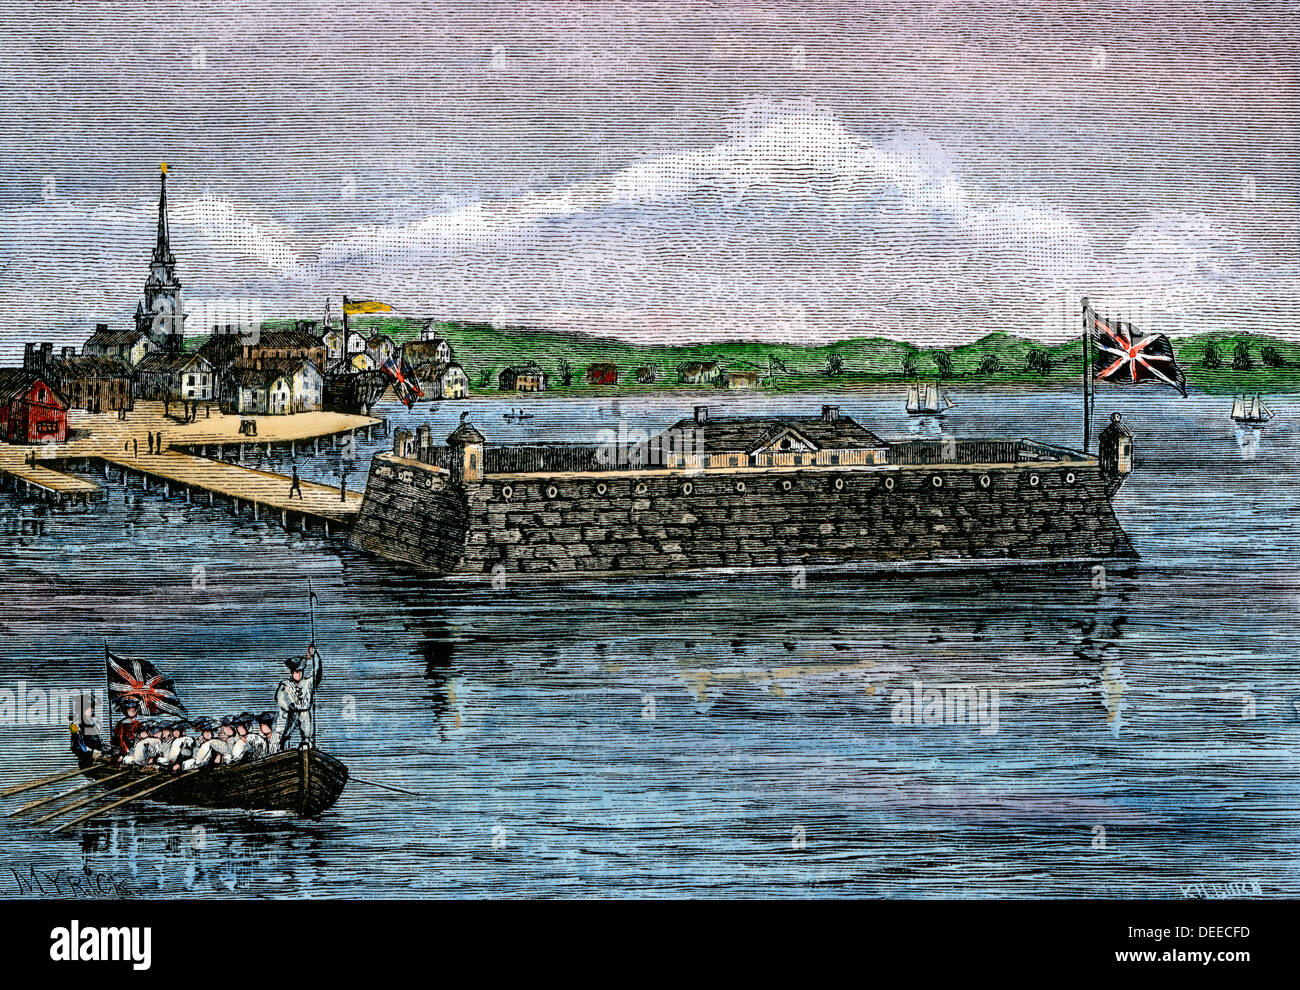 North Battery, colonial Boston harbor, 1700s. - Stock Image